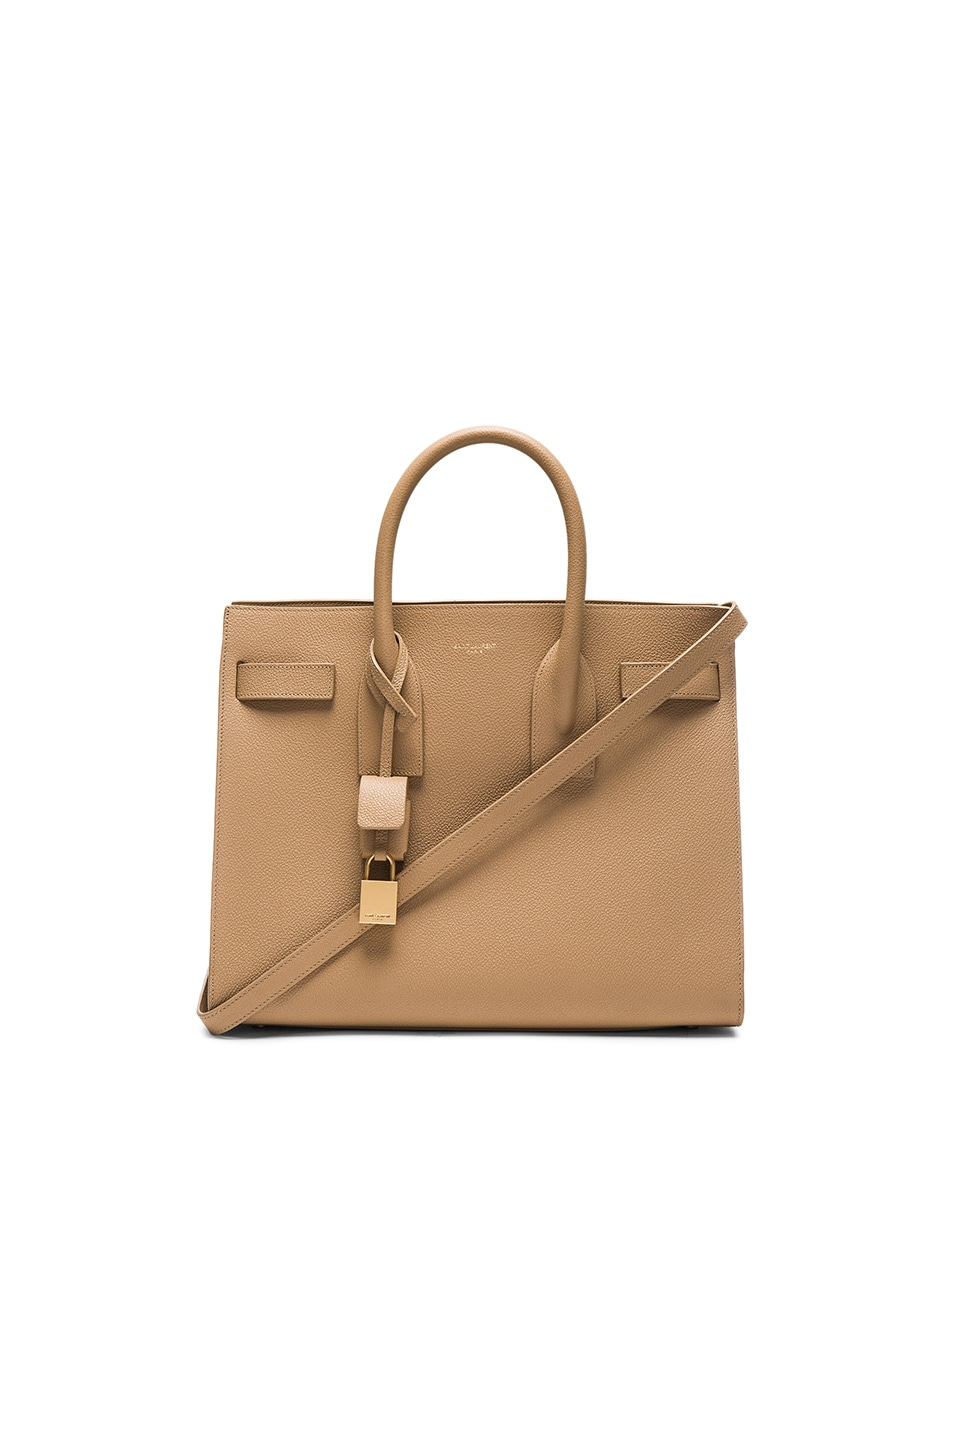 Image 1 of Saint Laurent Small Sac de Jour in Deep Beige